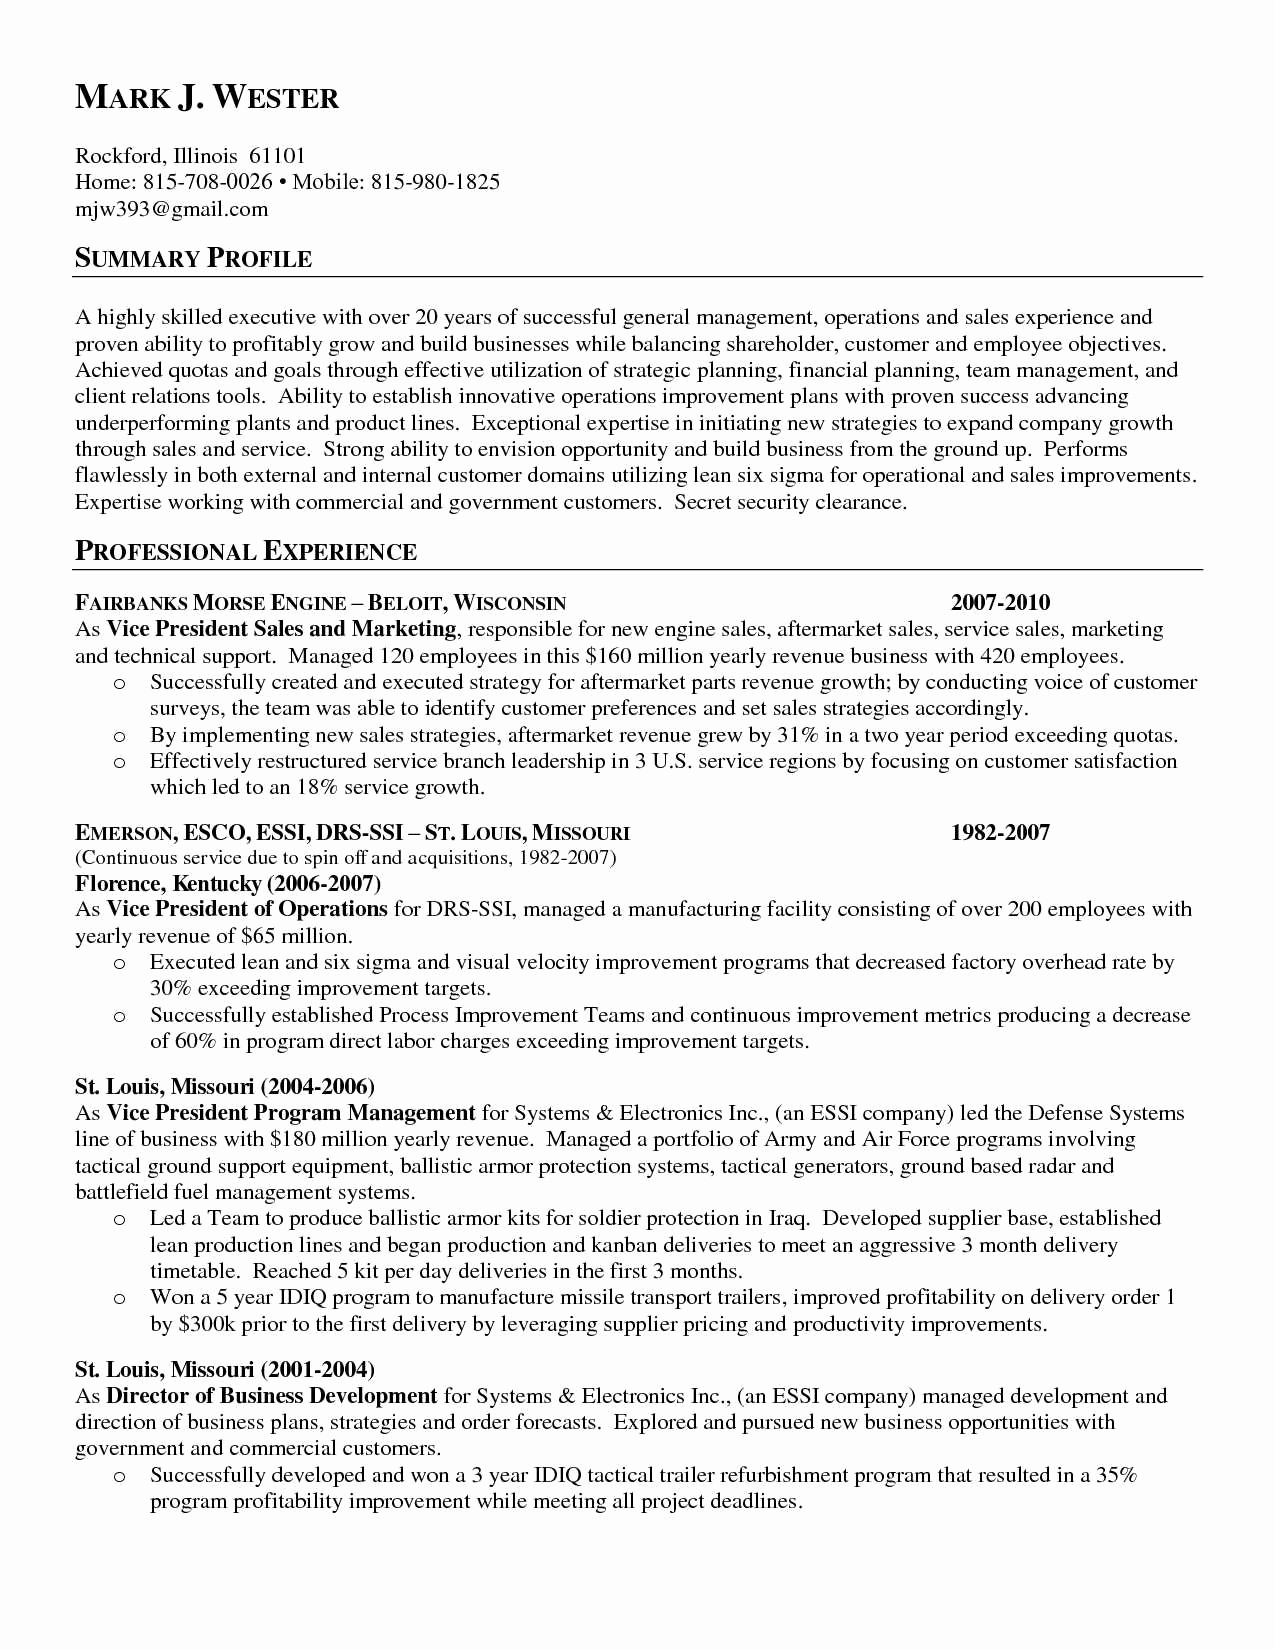 Generic Objective for Resume Elegant 23 Fast General Resume Objective Examples Fo A